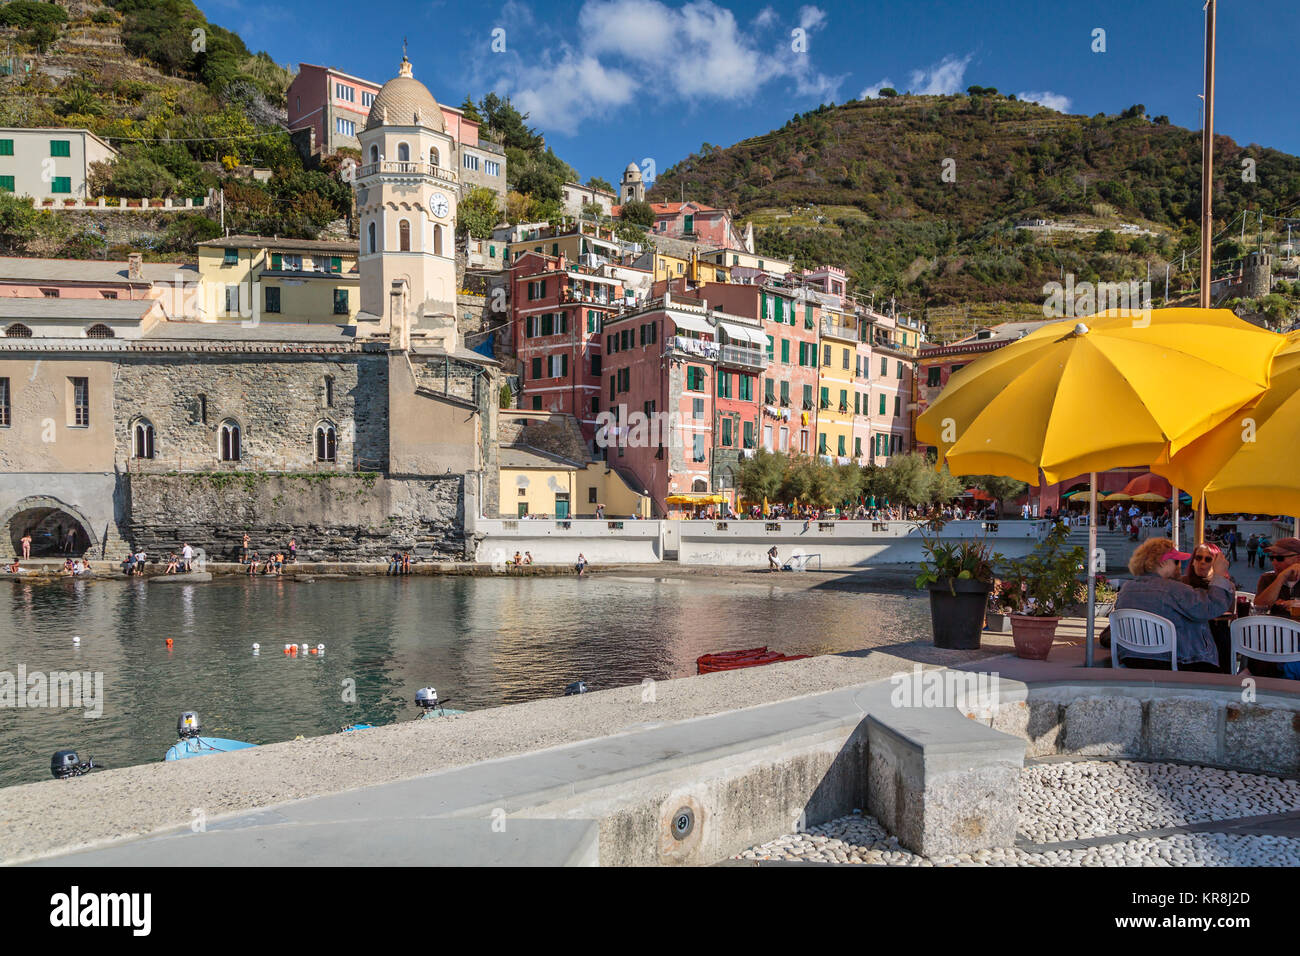 Yellow umbrellas at a portside restaurant in the village of Vernazza, Cinque Terre, Liguria, Italy, Europe. - Stock Image